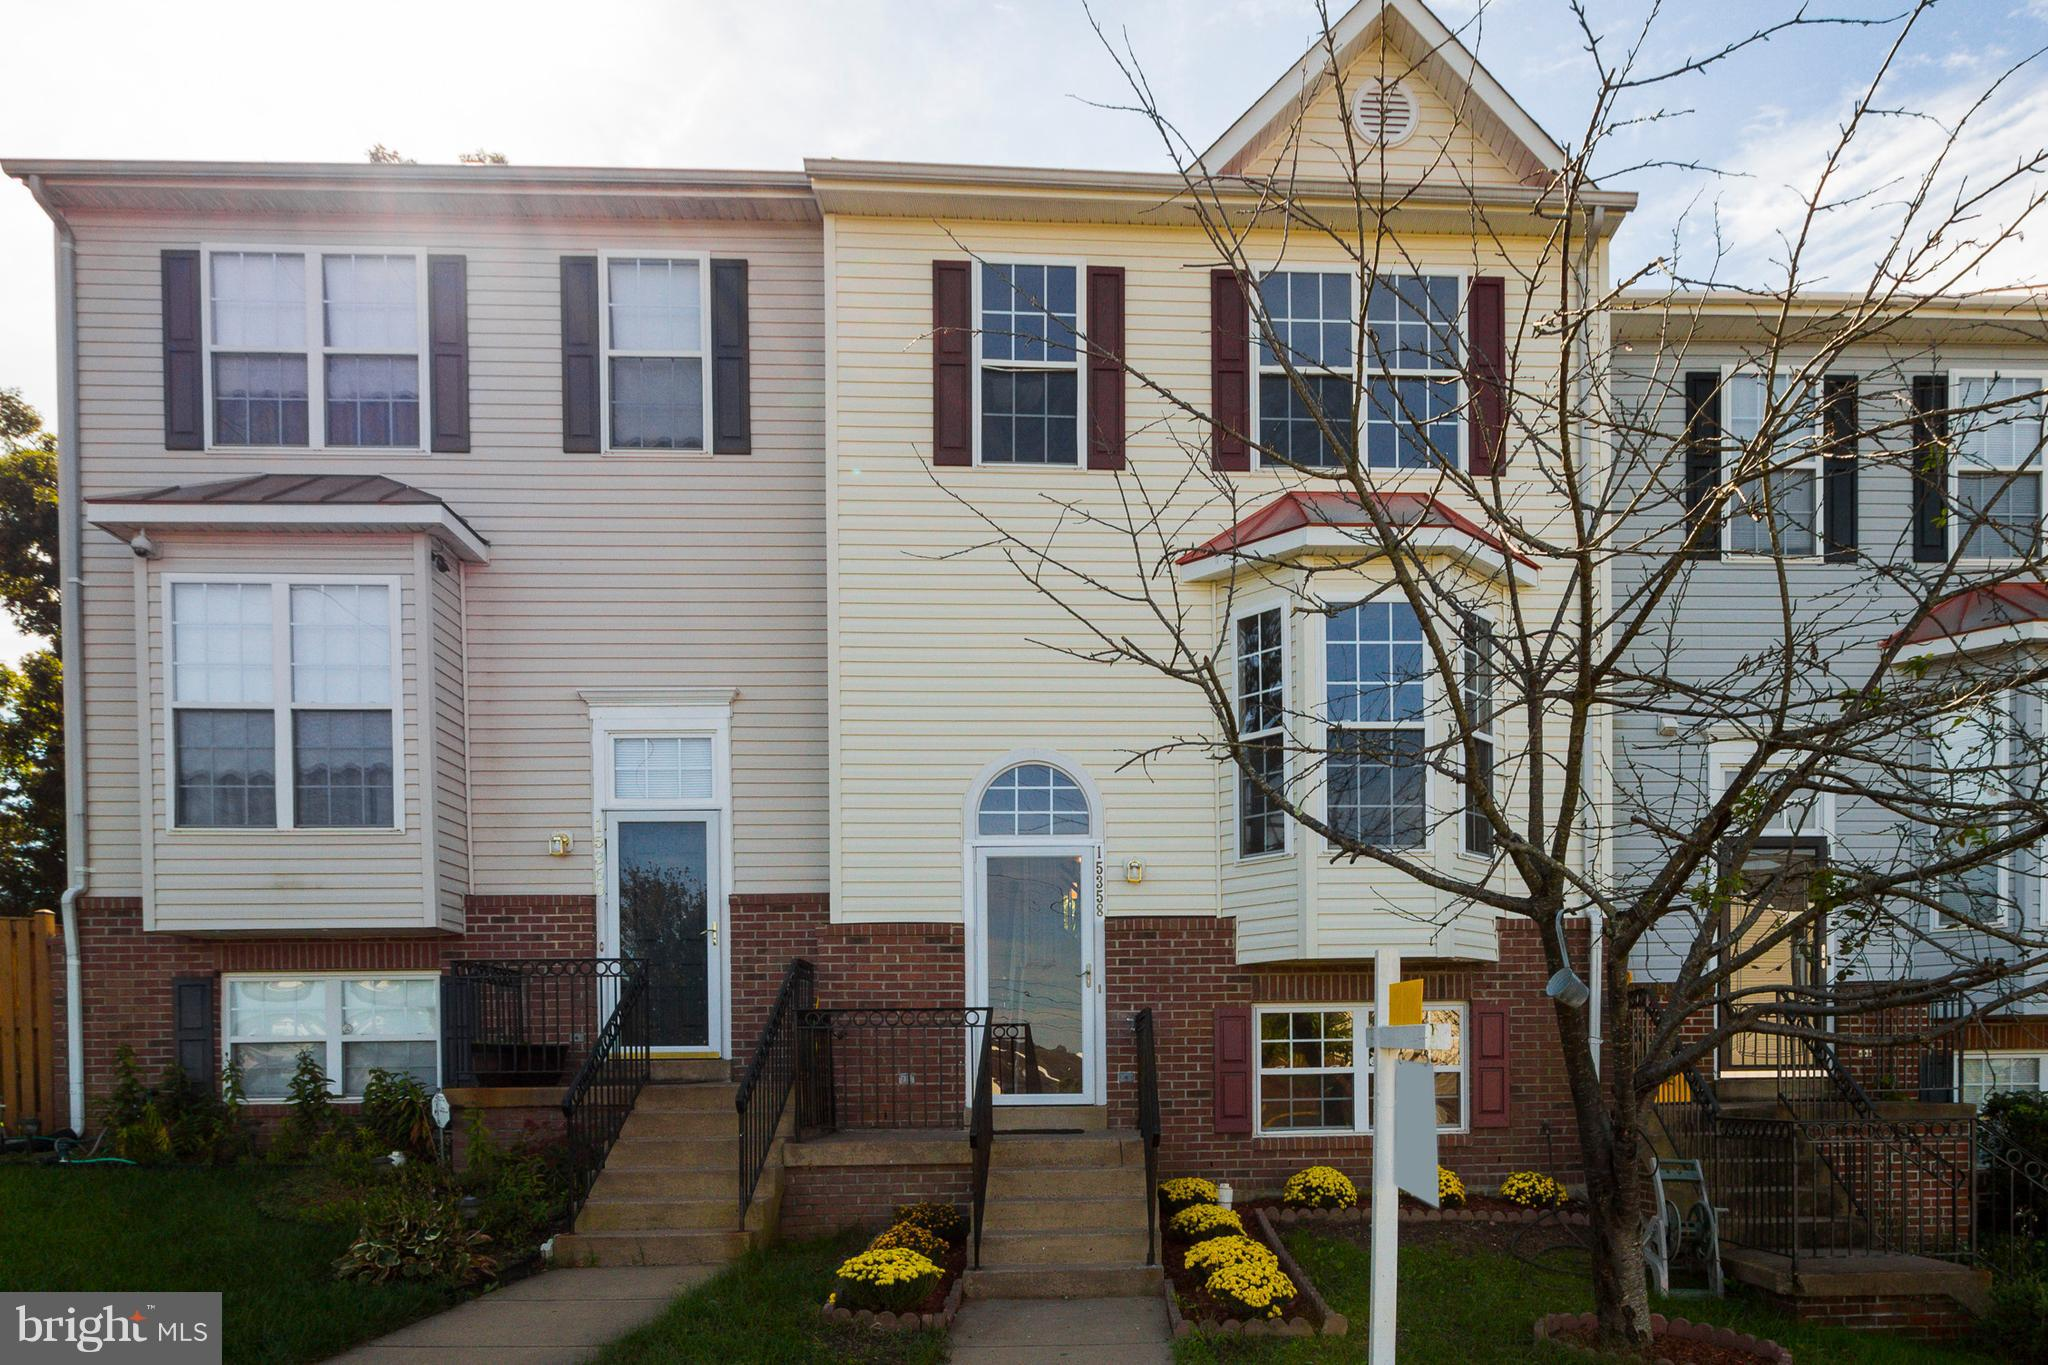 Spacious and Bright Town House, New SS Appliances, New Granite tops in kitchen and bathrooms, New Tiles in Kitchen, Sun room and Foyer, New Carpet, Newly Painted, Master bathroom with double vanity, Move in ready, 1/2 mile to I-95 close Potomac Mills shopping center. Must see